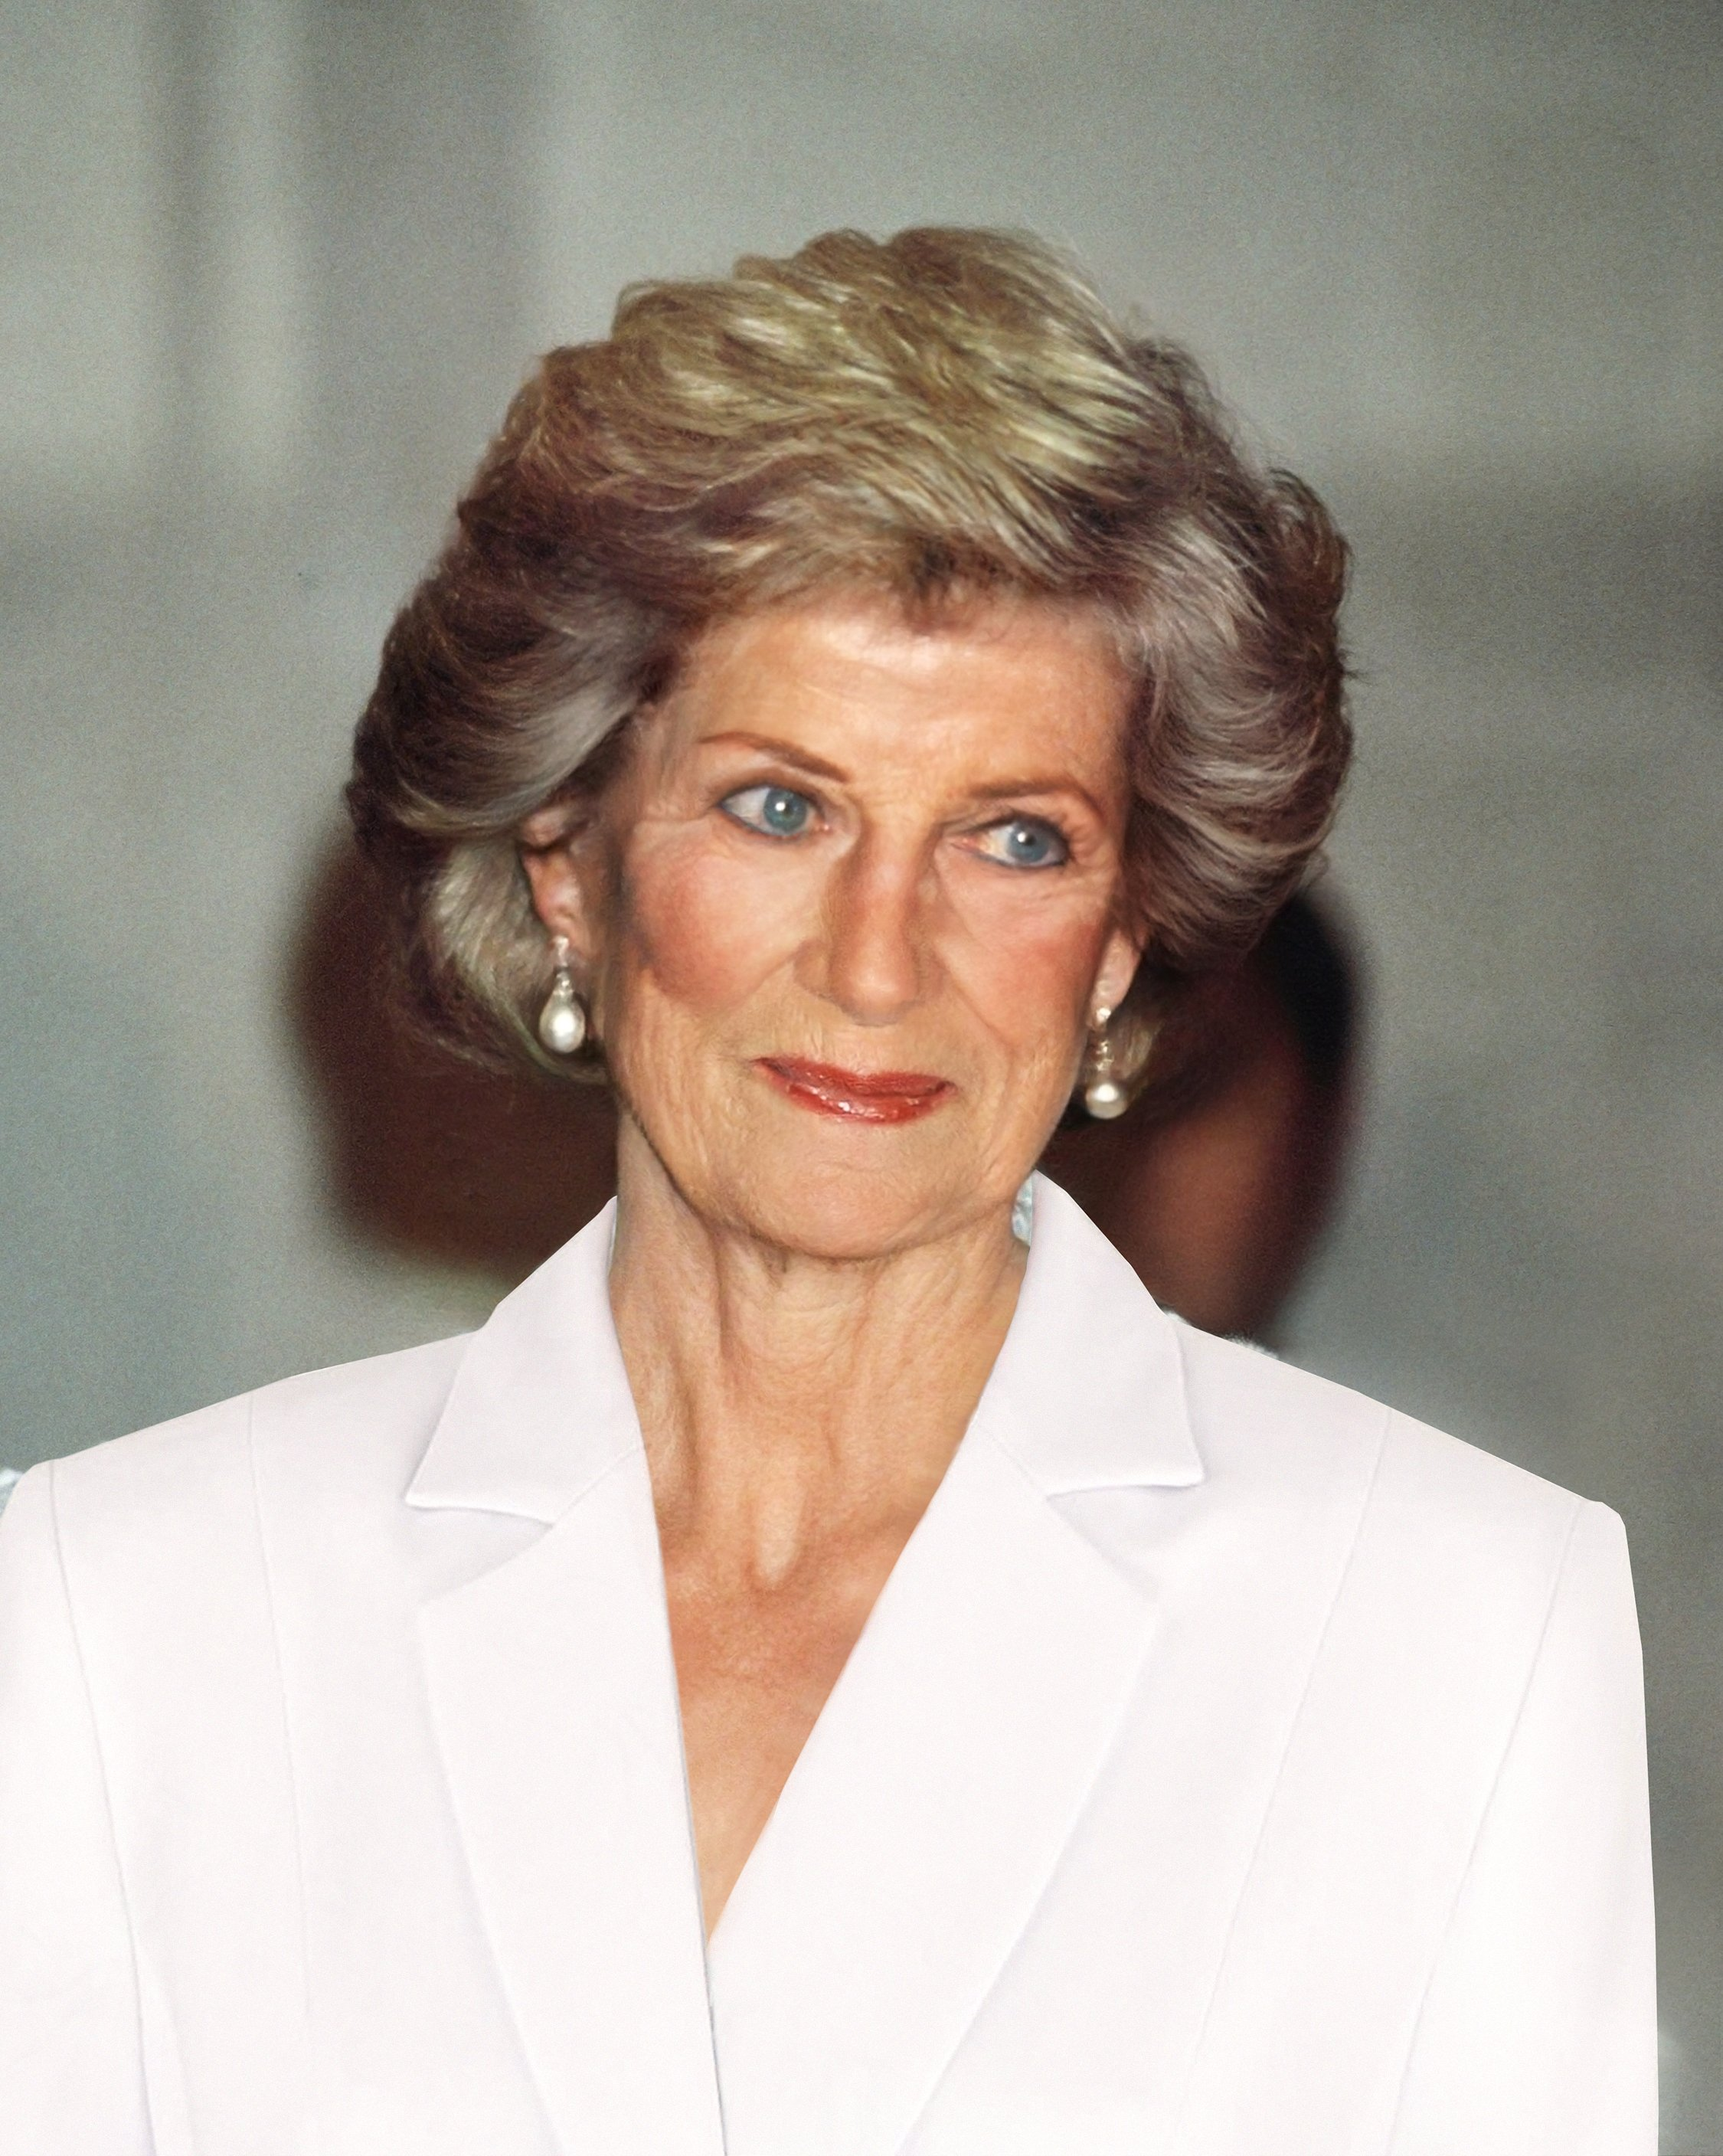 Approximation of what Princess Diana would have looked like at 59 | Source: Getty Images